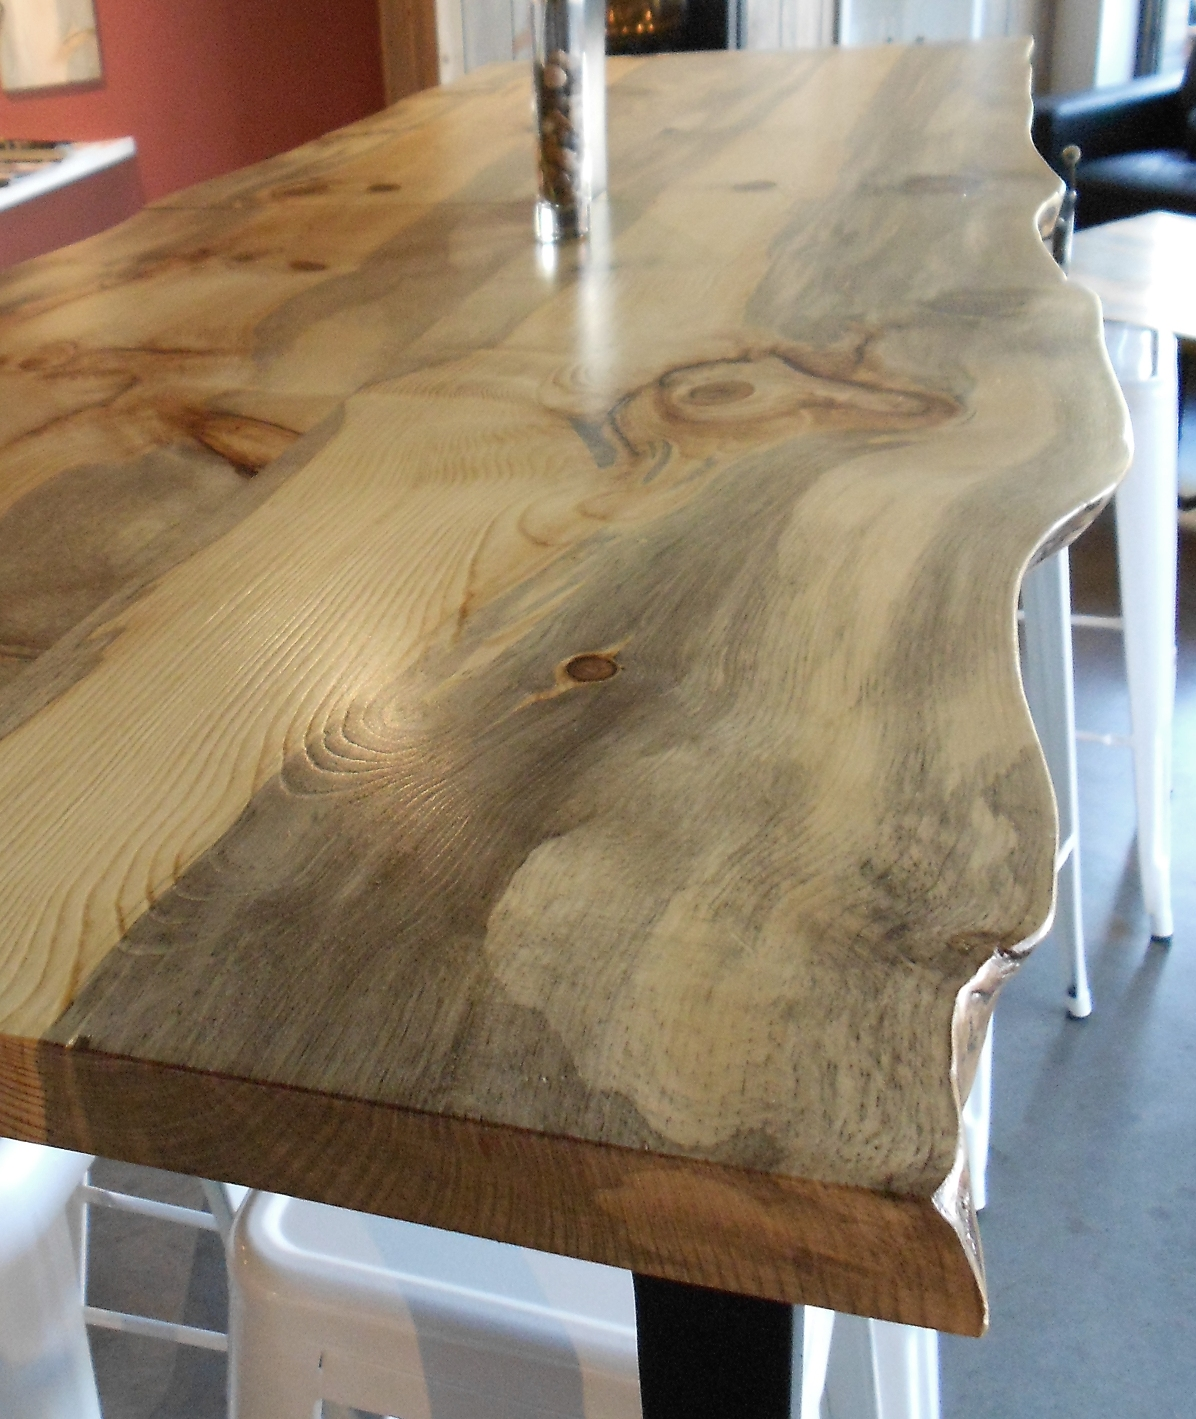 Windfall lumber creating beauty from reclaimed wood for Natural edge wood countertops